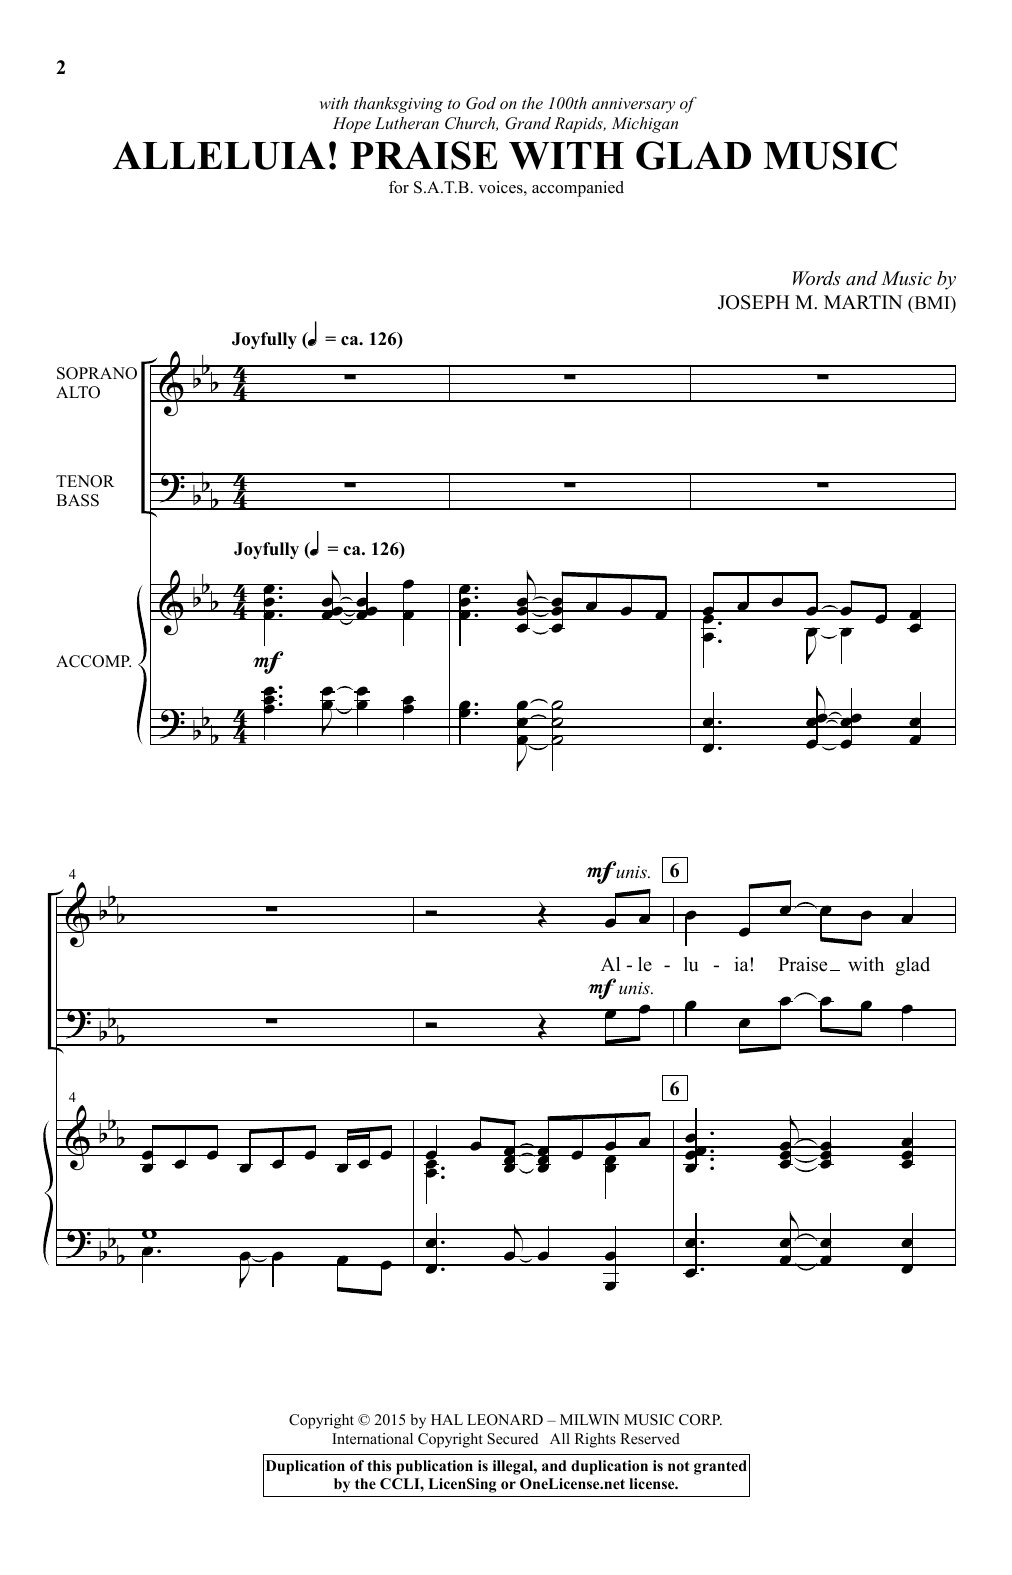 Alleluia! Praise With Glad Music Sheet Music